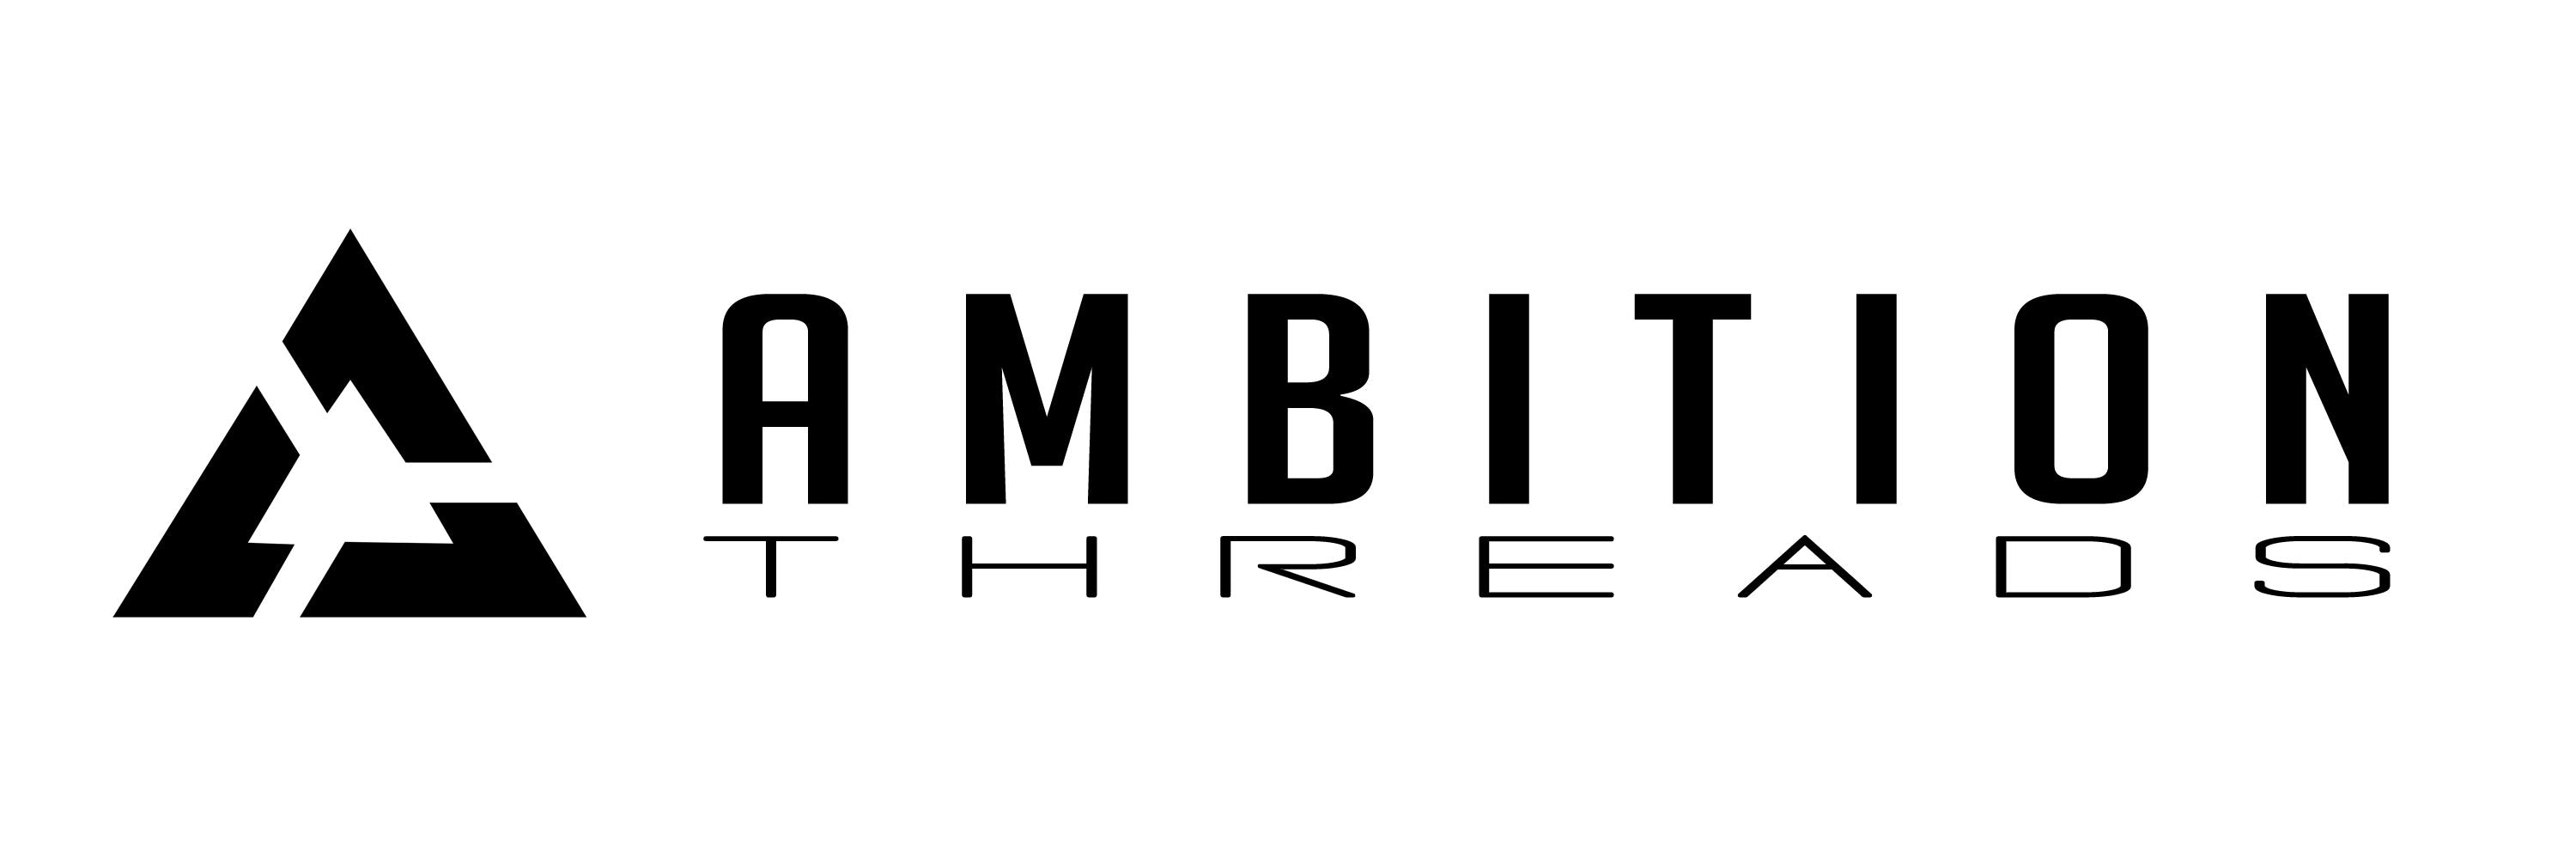 Ambition Threads Company